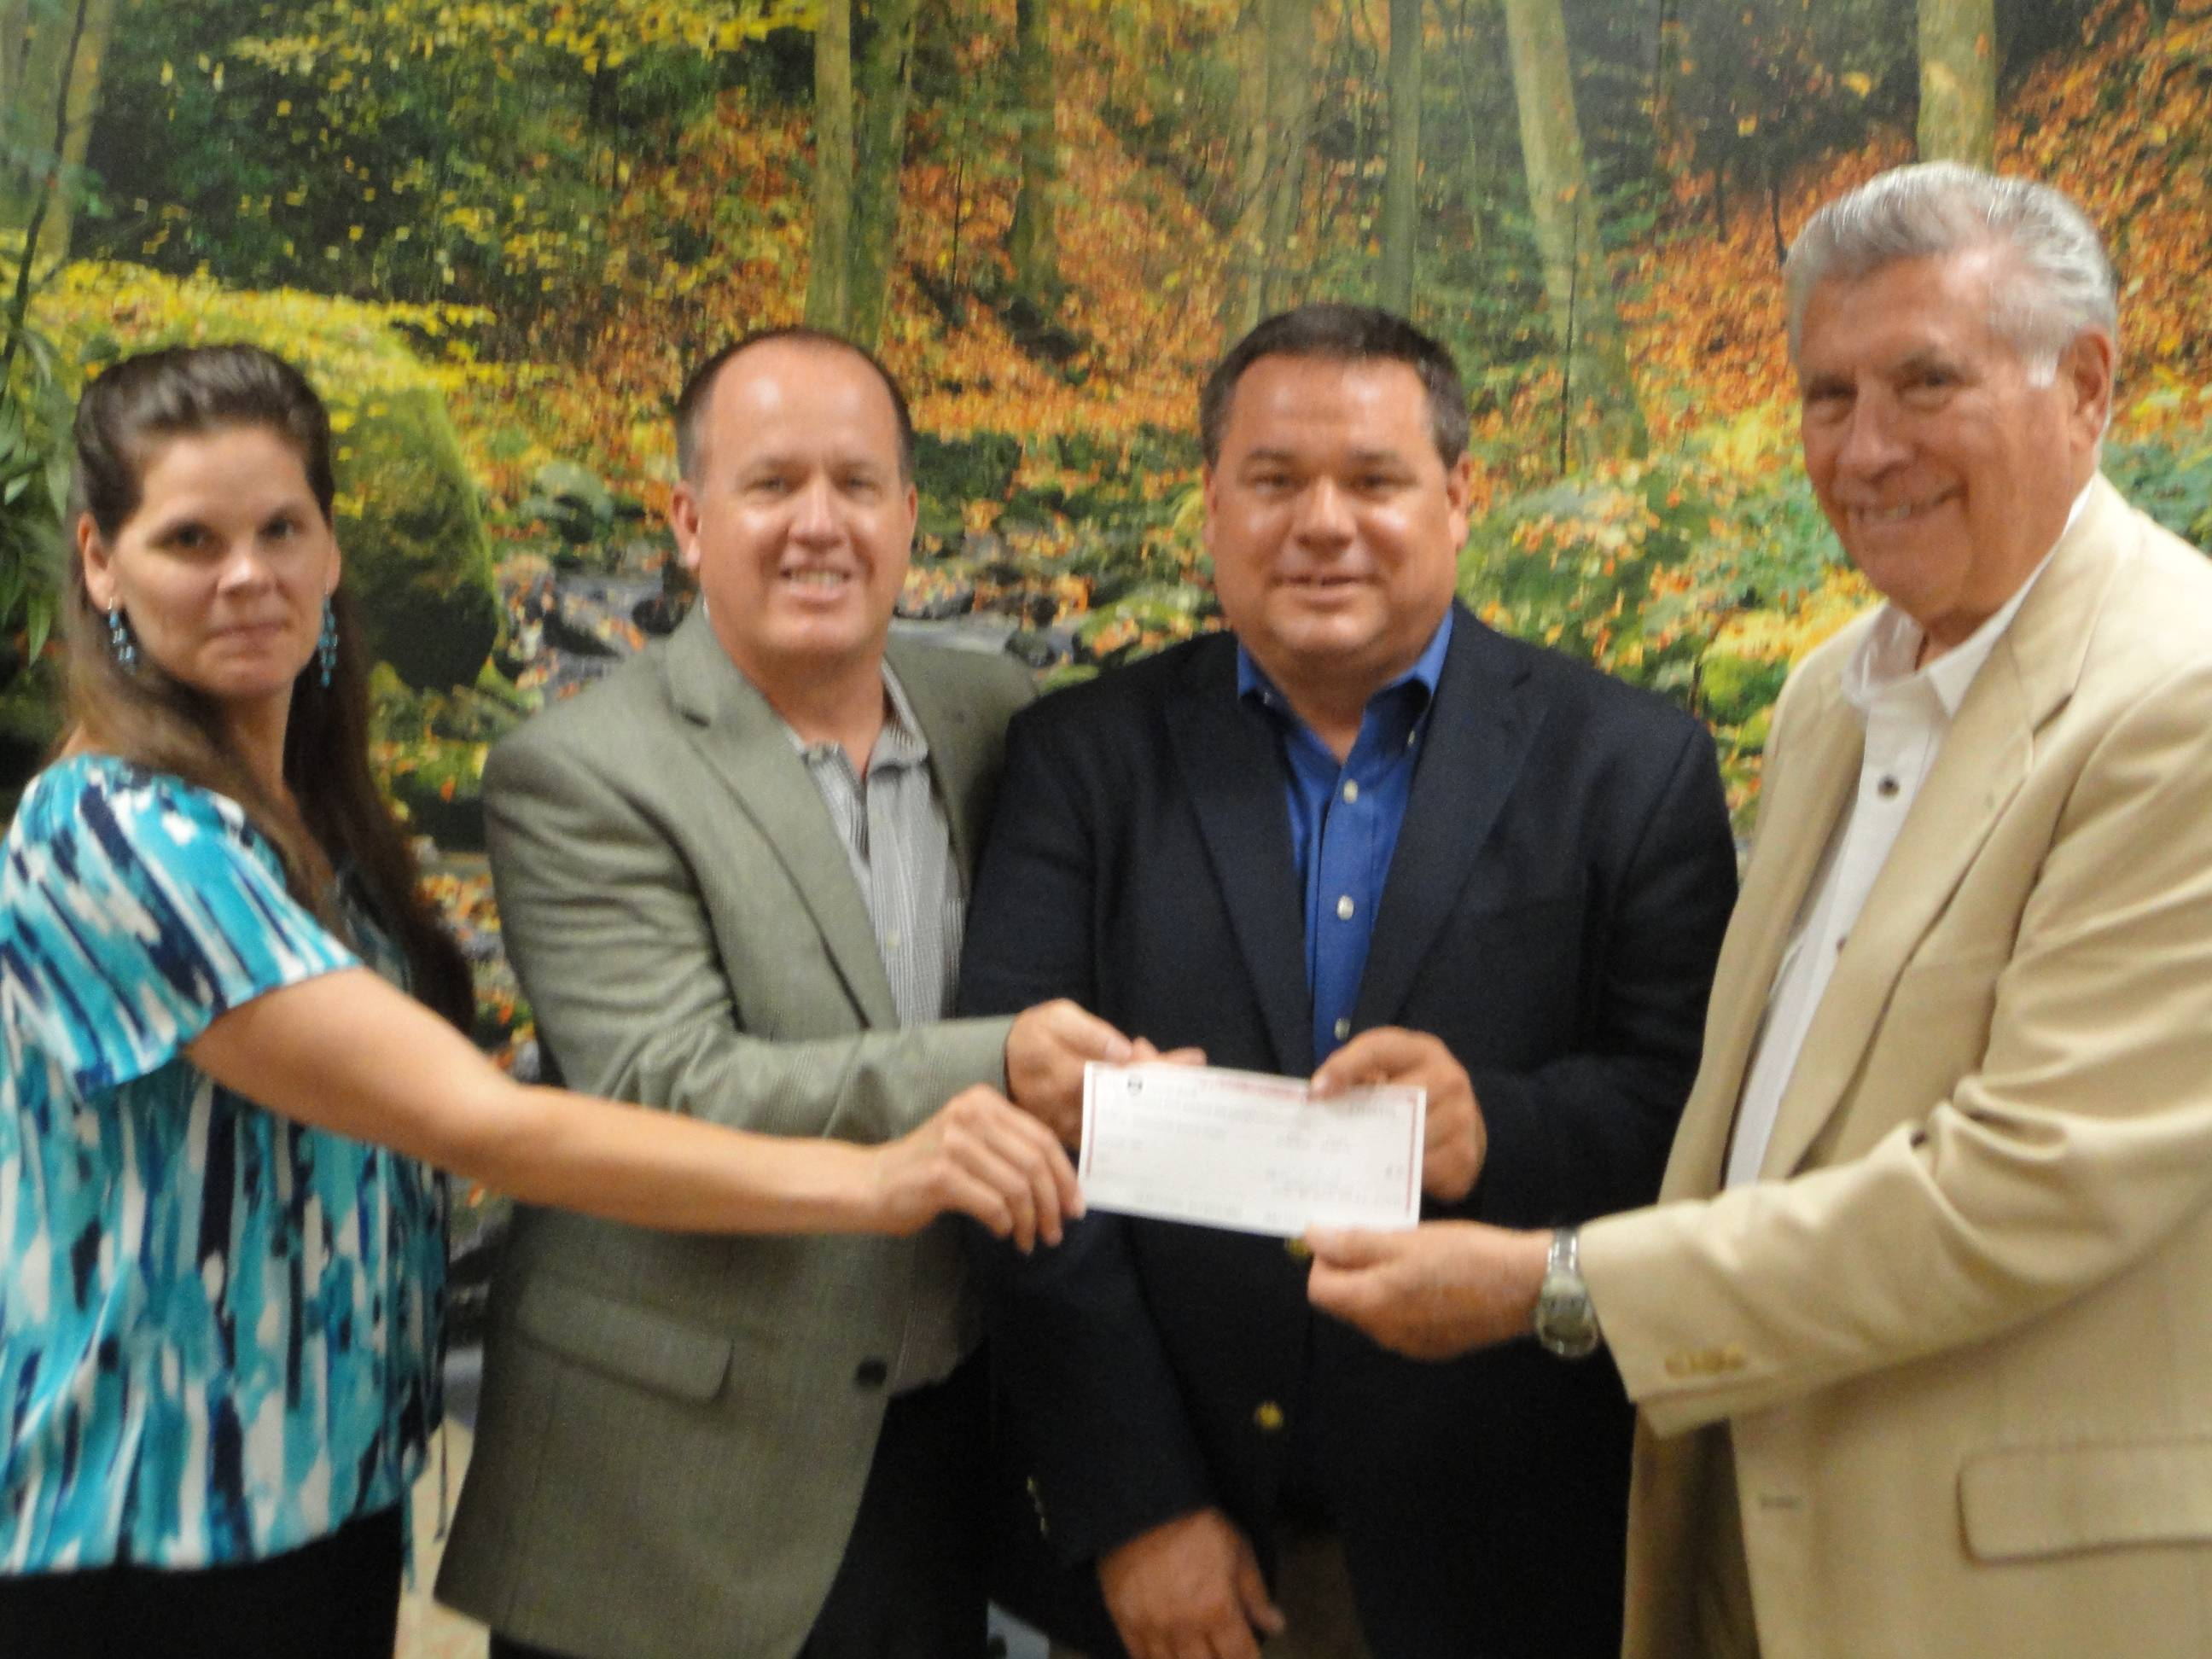 Kristin Maxwell, left, and Floyd Kettering, right, of Humanitarian Service Project receive the donation for UPS representatives Todd Westberg, second from left, and Jim Slanker.